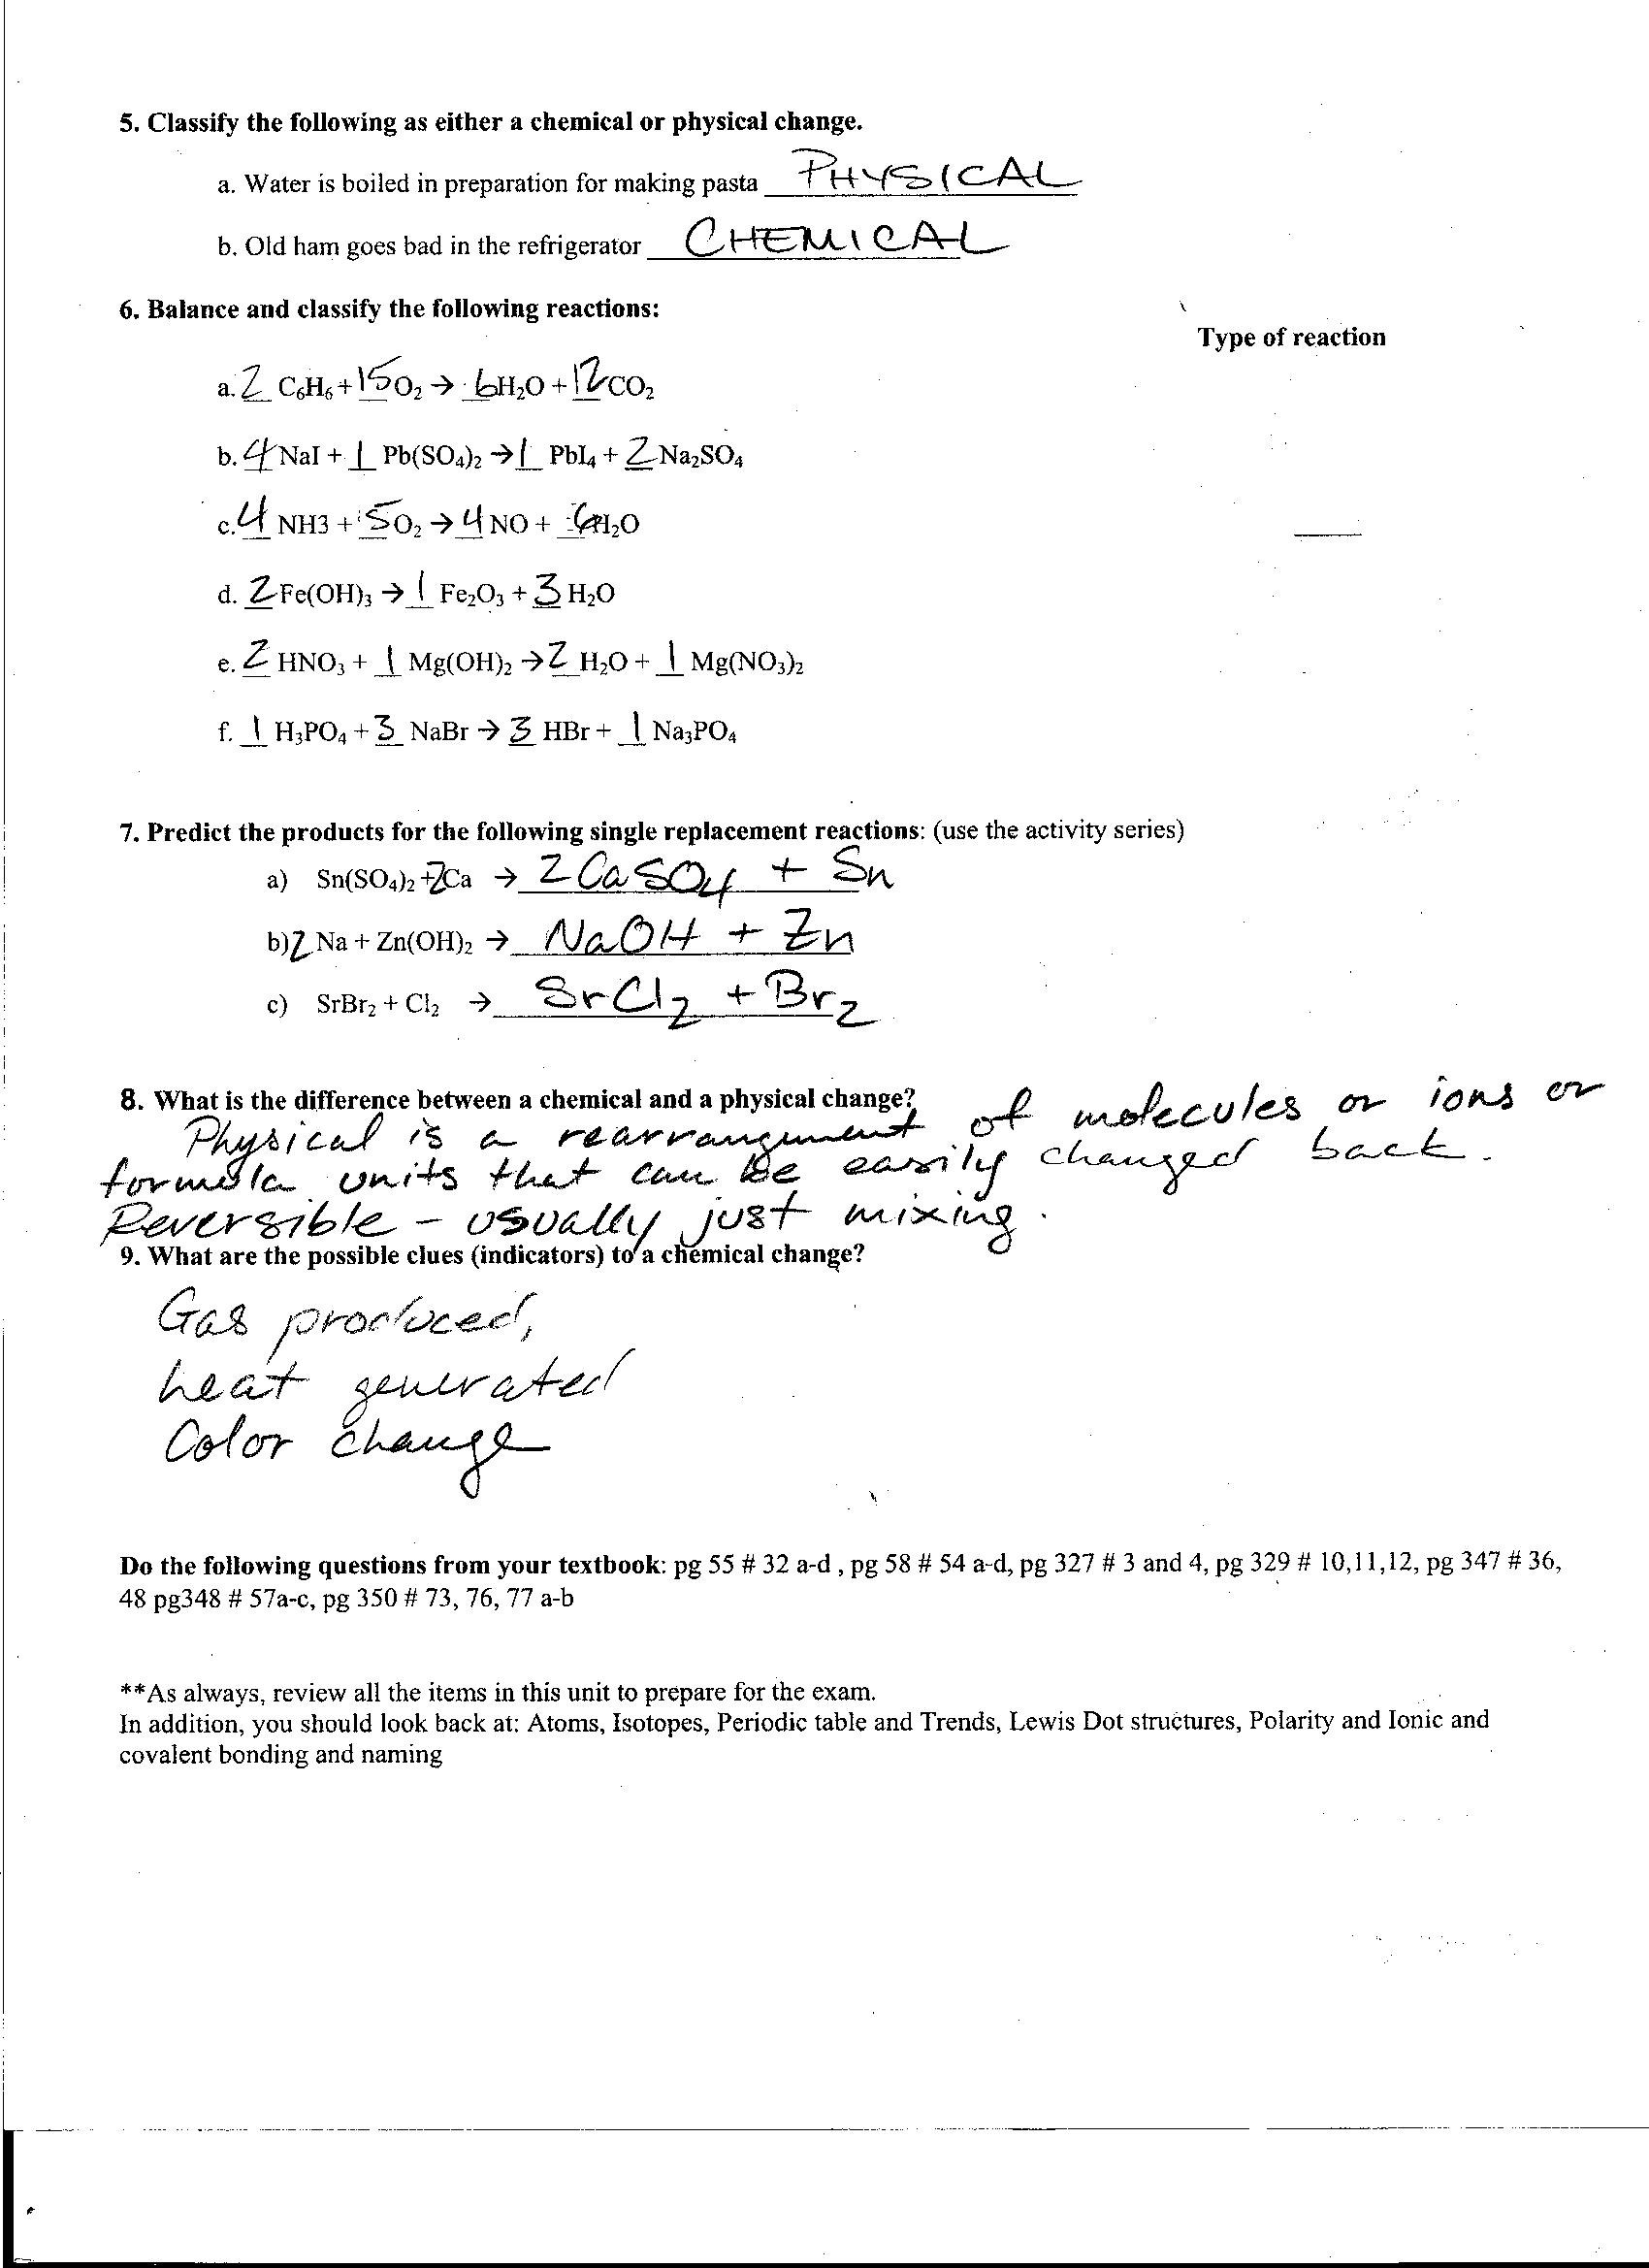 Foothill High School – Classifying Reactions Worksheet